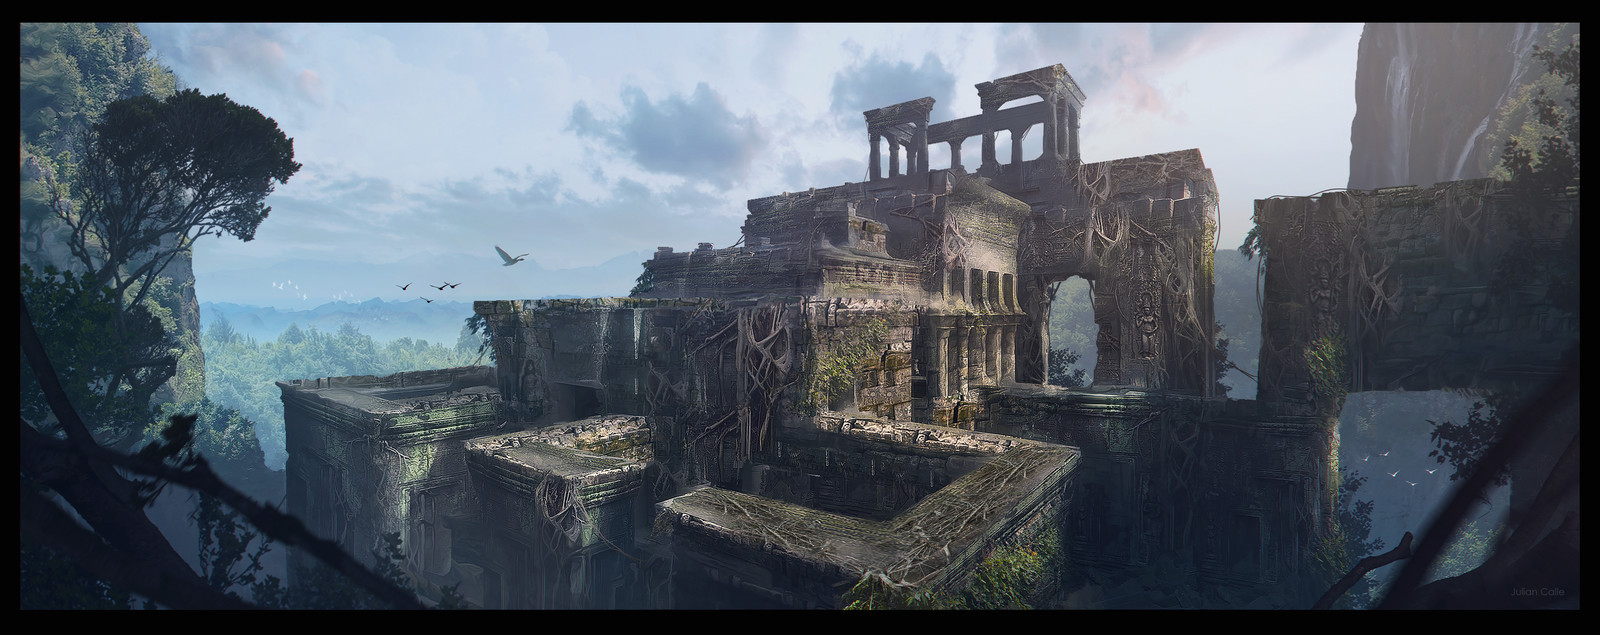 Ruins in the Jungle # 002